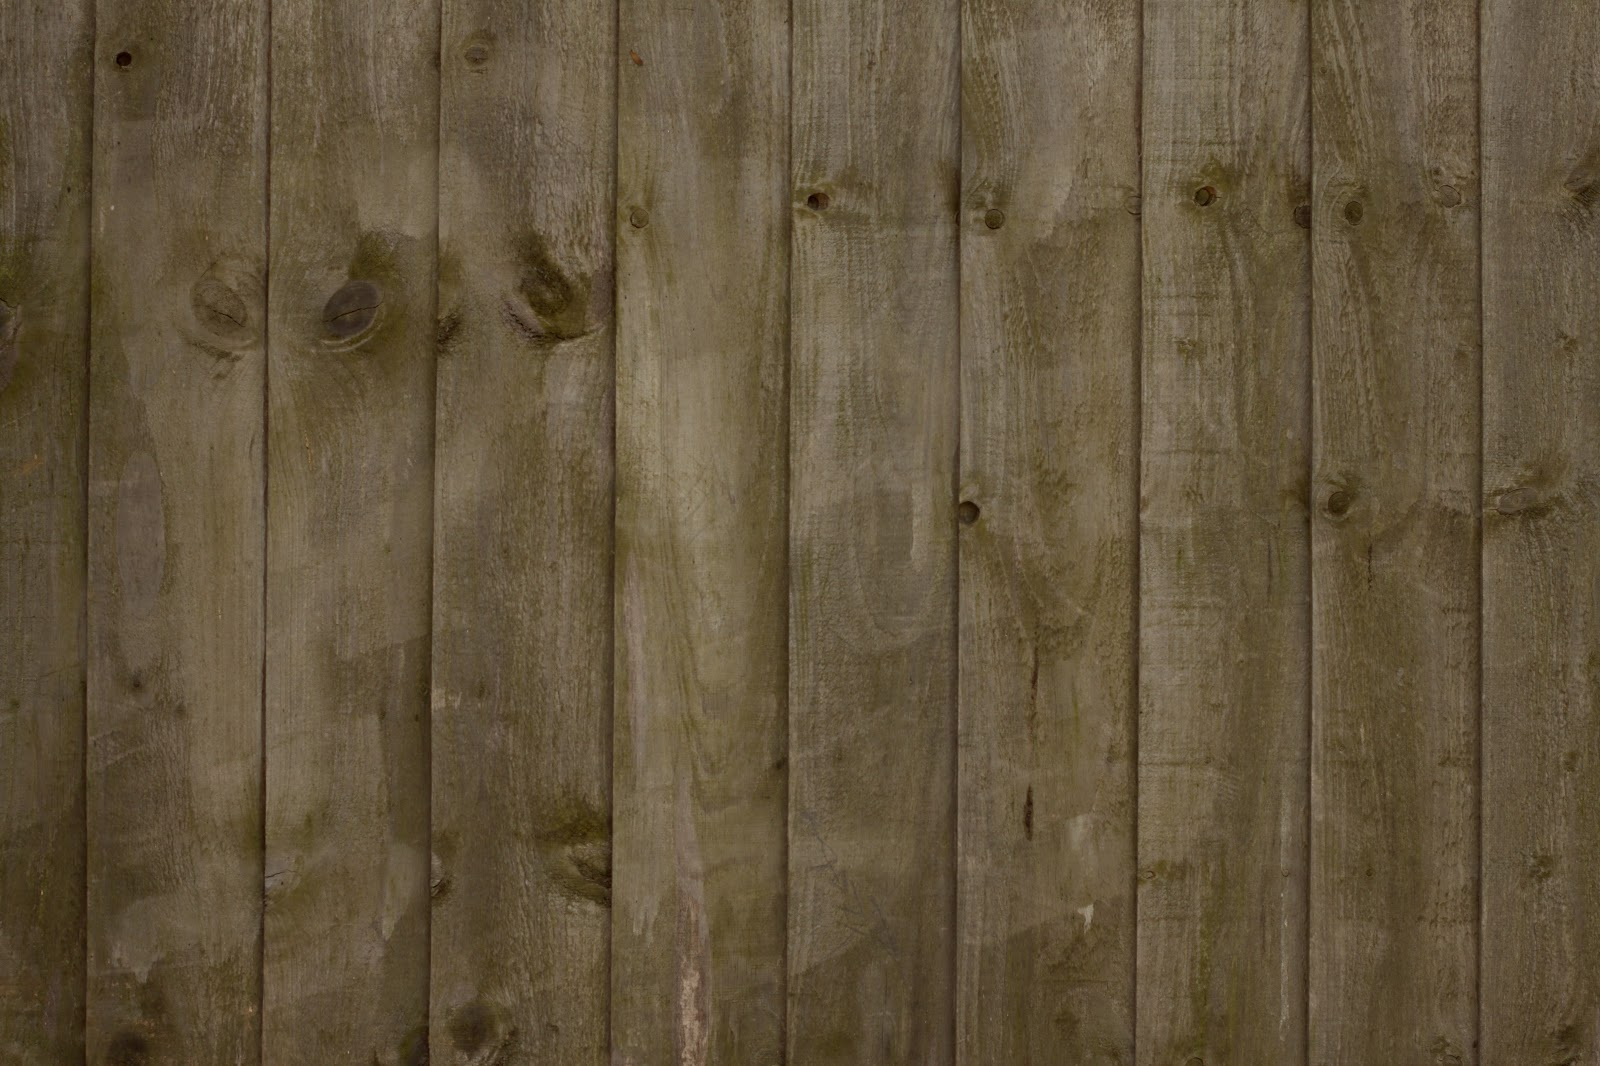 Wood Fence Texture : ... Textures: Wood dry cracked fence plank tree bark texture ver 20